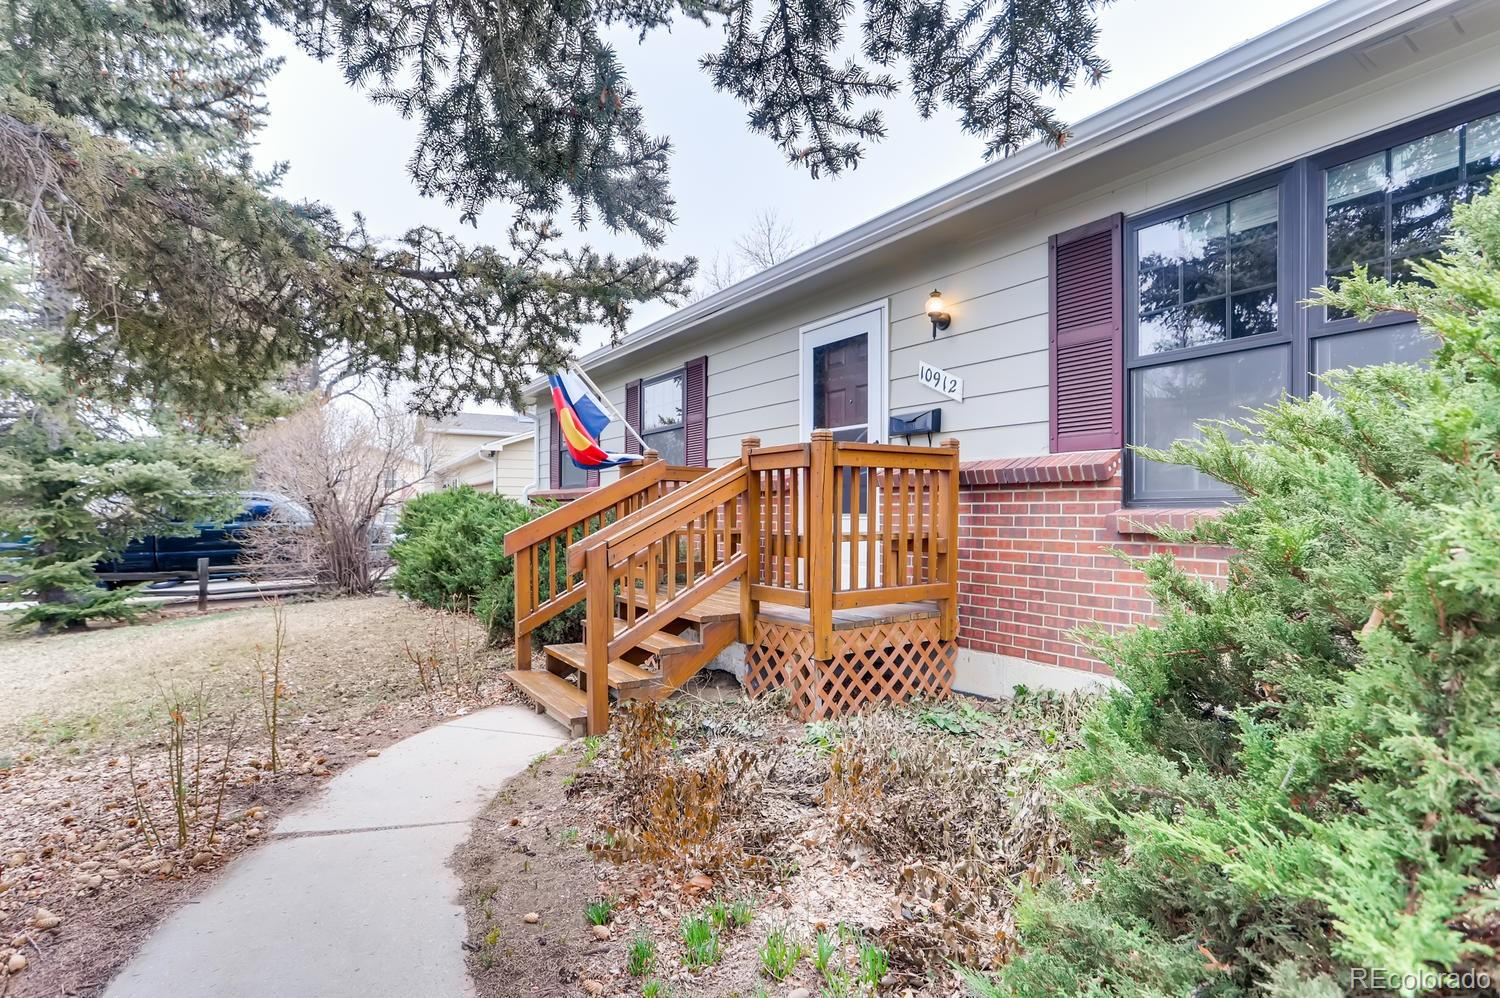 MLS# 6804031 - 1 - 10912 W 107th Place, Westminster, CO 80021